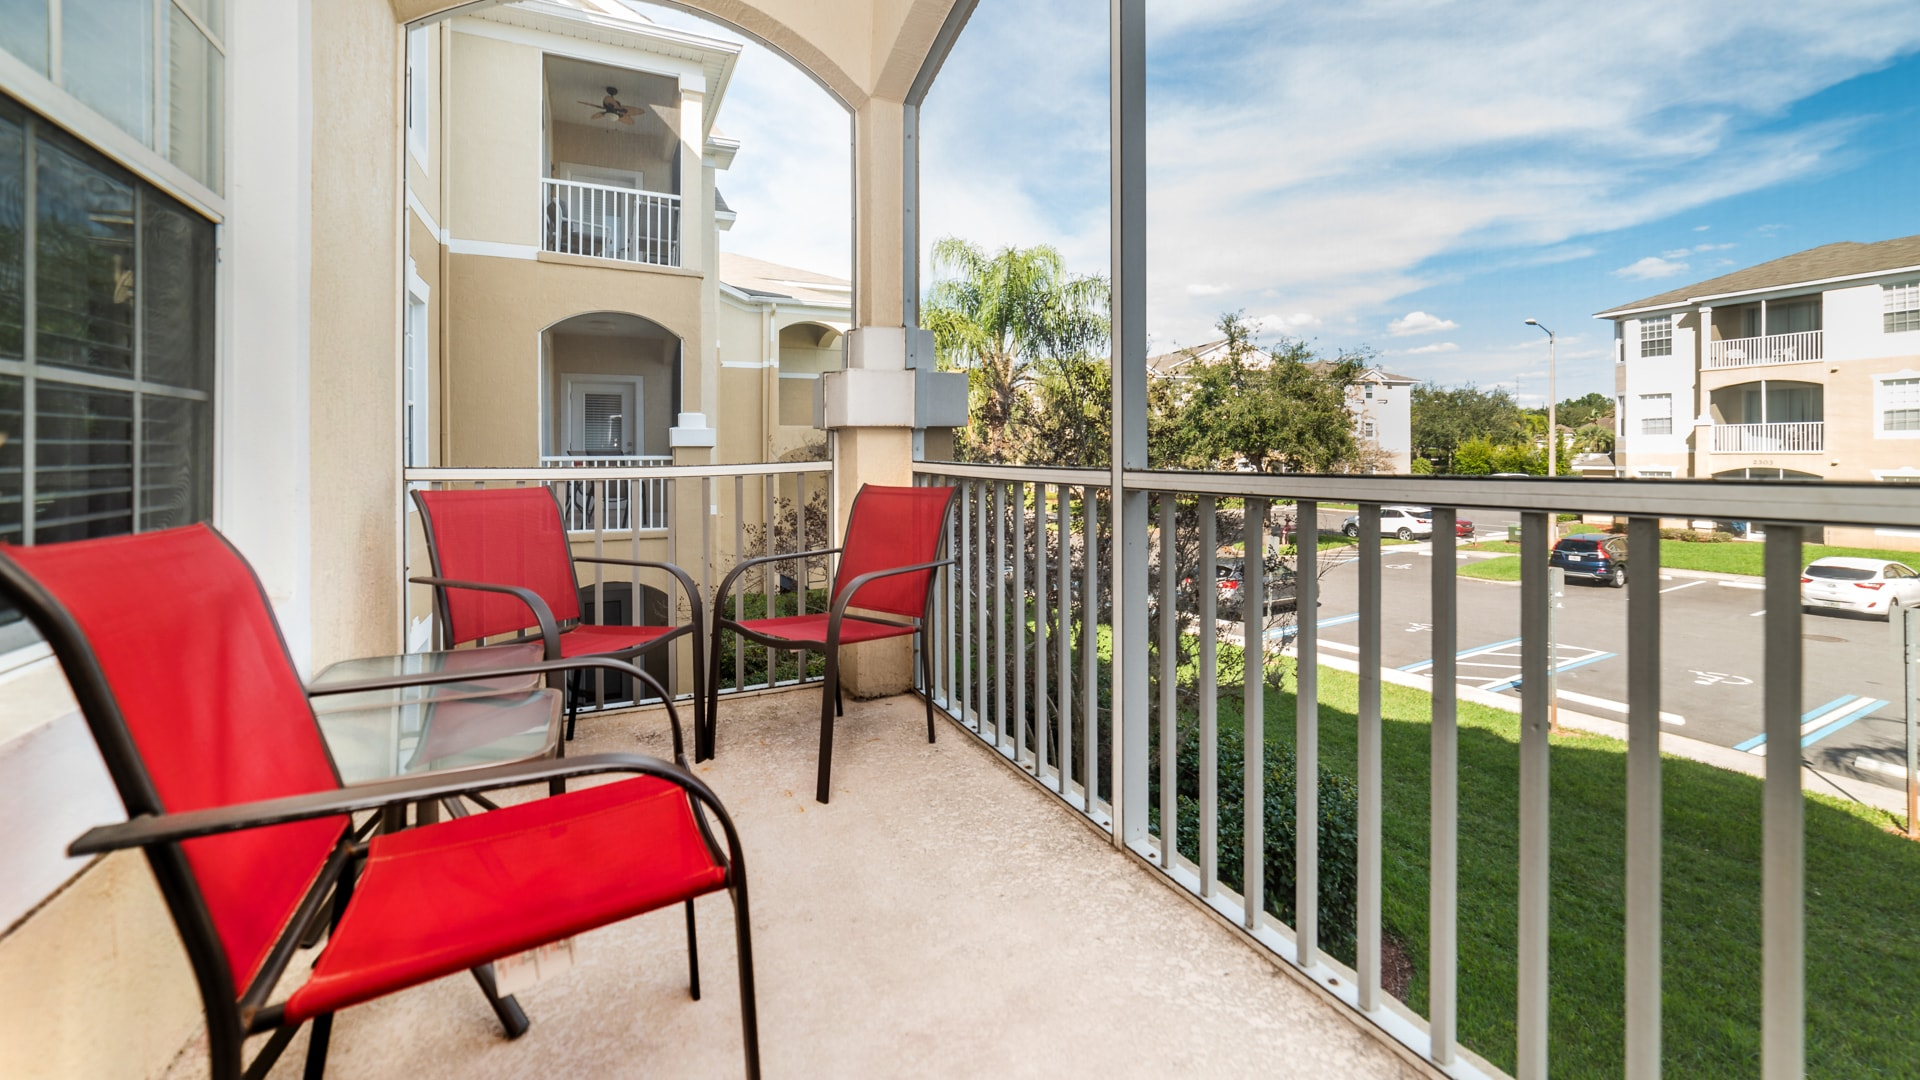 2300 Butterfly Palm Way #204-200169